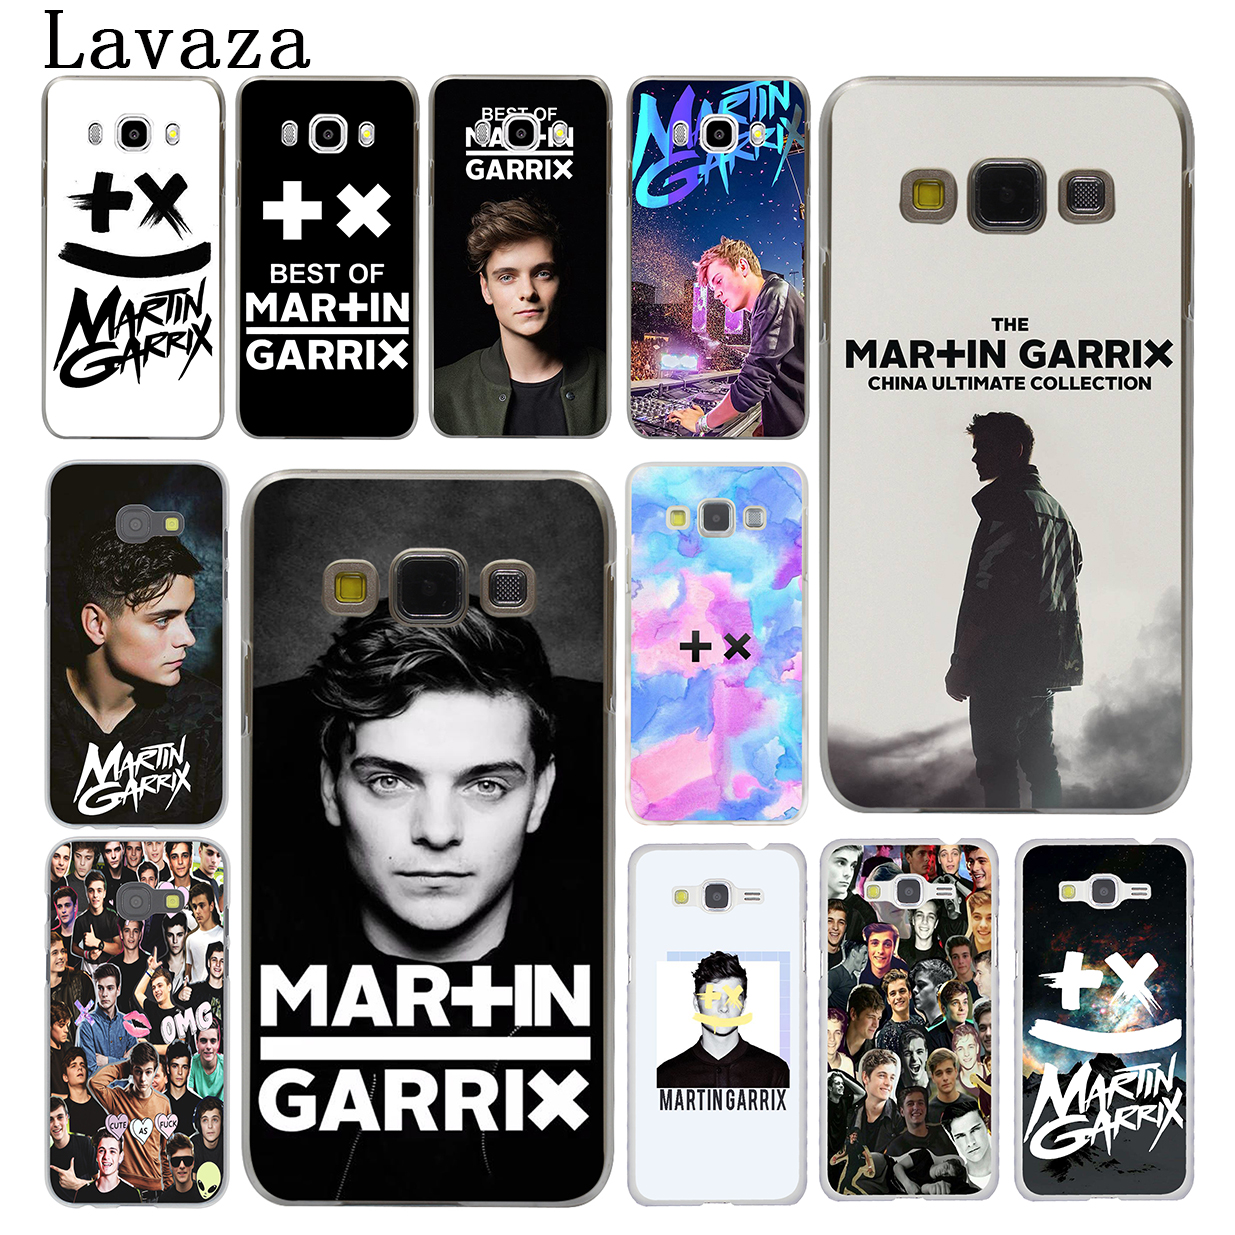 Lavaza Martin Garrix Famous DJ Hard Phone Case for Samsung Galaxy J7 J1 J2 J3 J5 2015 2016 2017 Prime Pro Ace 2018 Cover